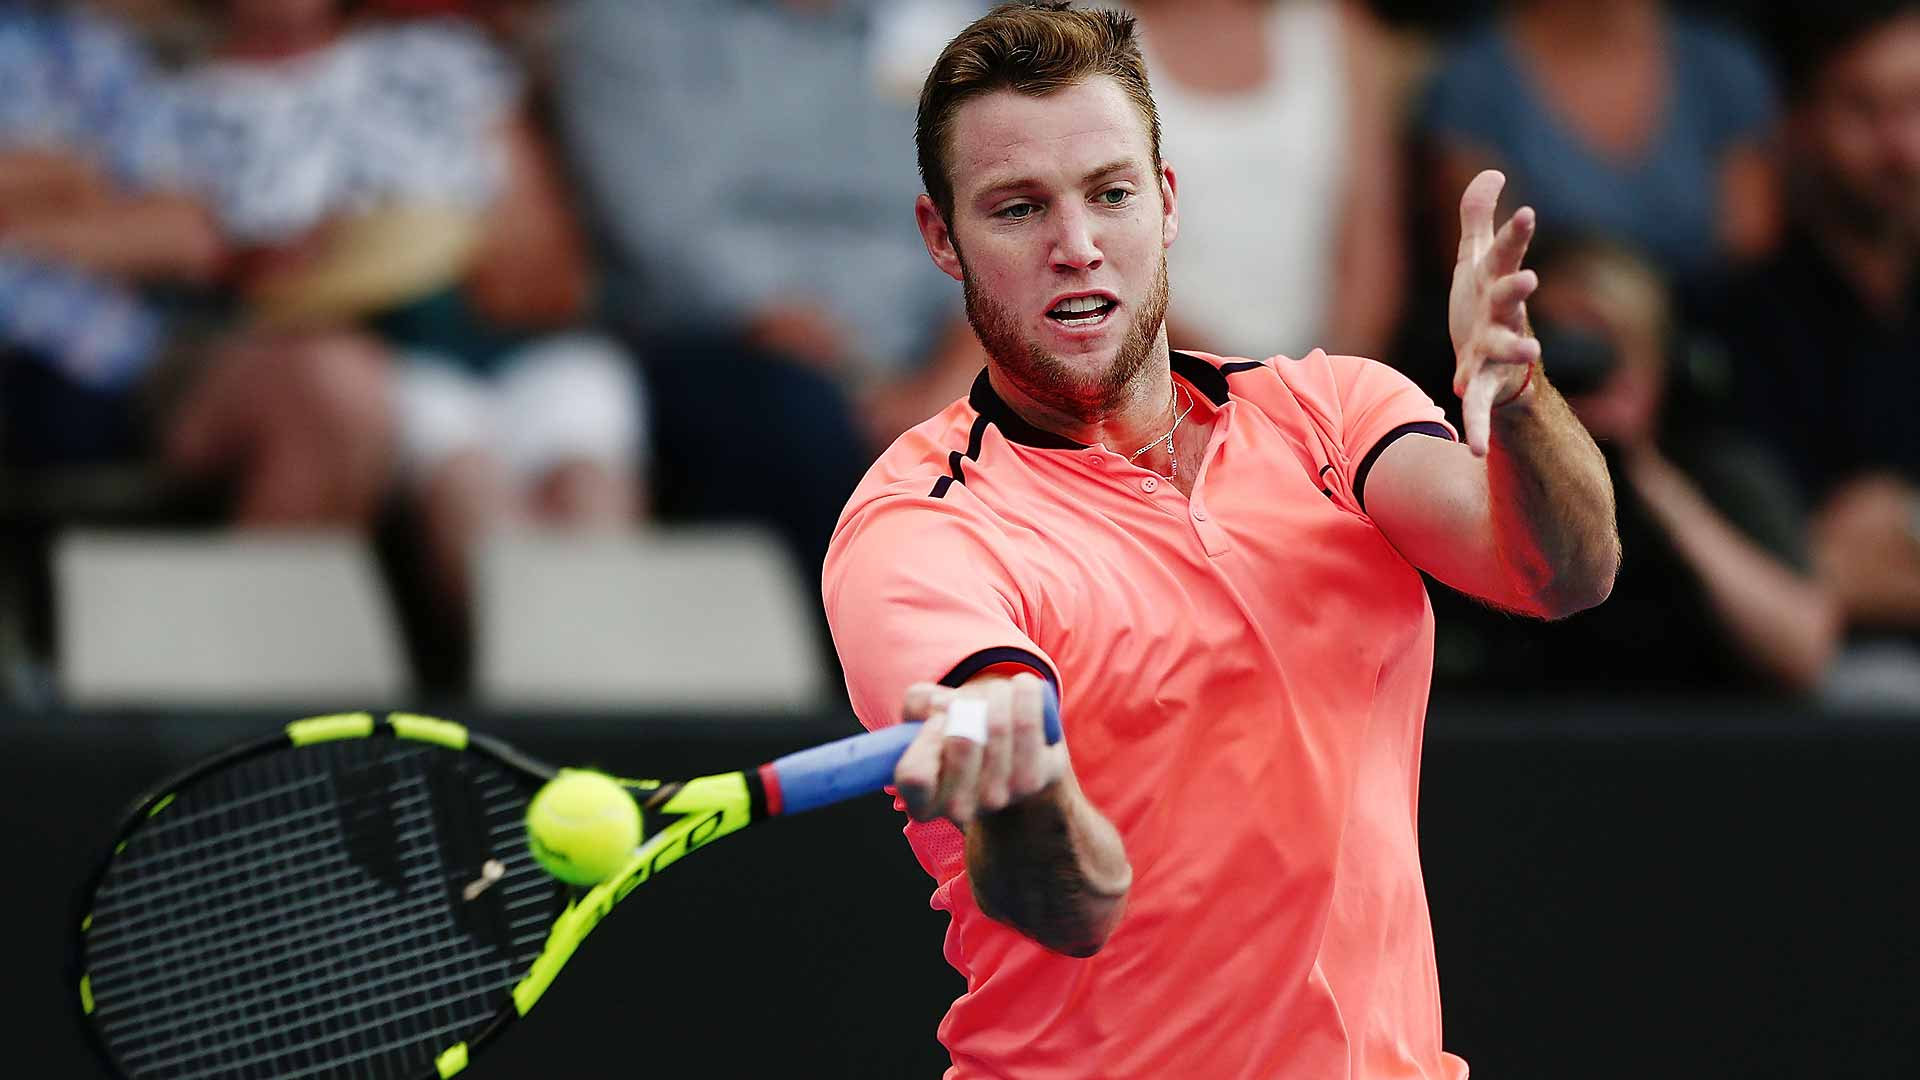 Jack Sock prevails in an all-American clash against Steve Johnson.